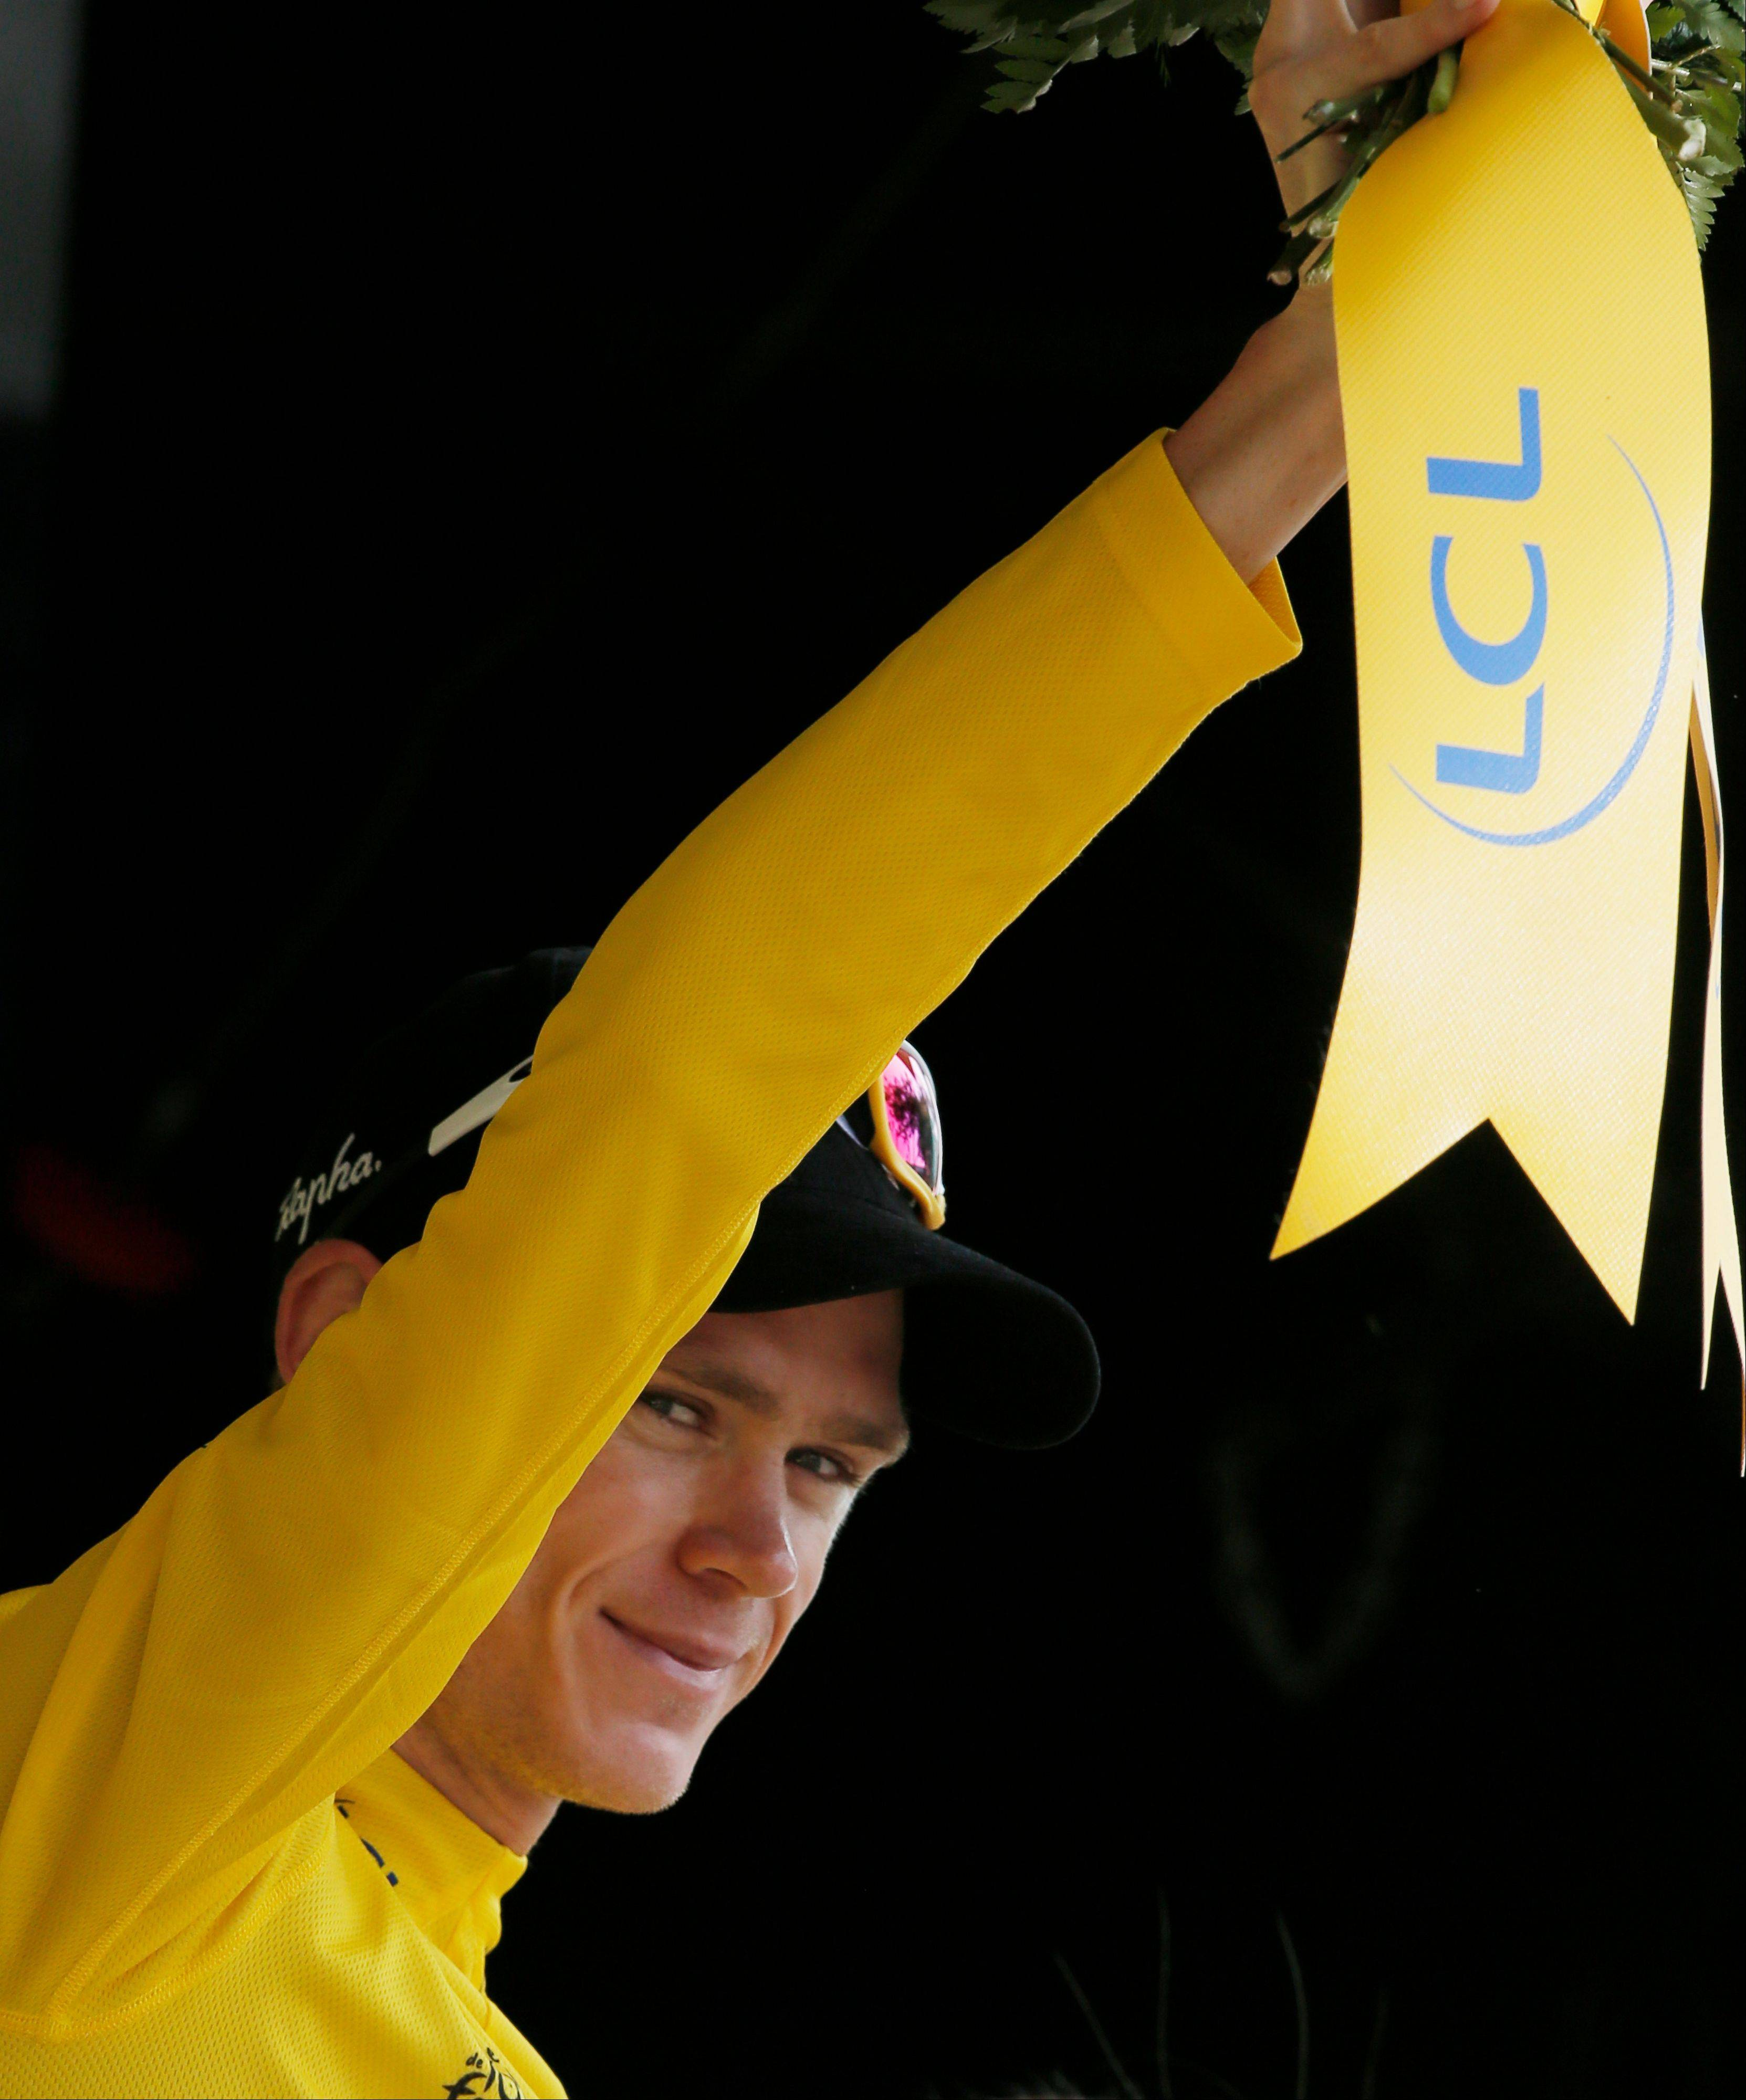 Christopher Froome of Britain, wearing the overall leader's yellow jersey, celebrates on the podium of the twelfth stage of the Tour de France cycling race over 218 kilometers (136.2 miles) with start in in Fougeres and finish in Tours, western France, Thursday July 11 2013.